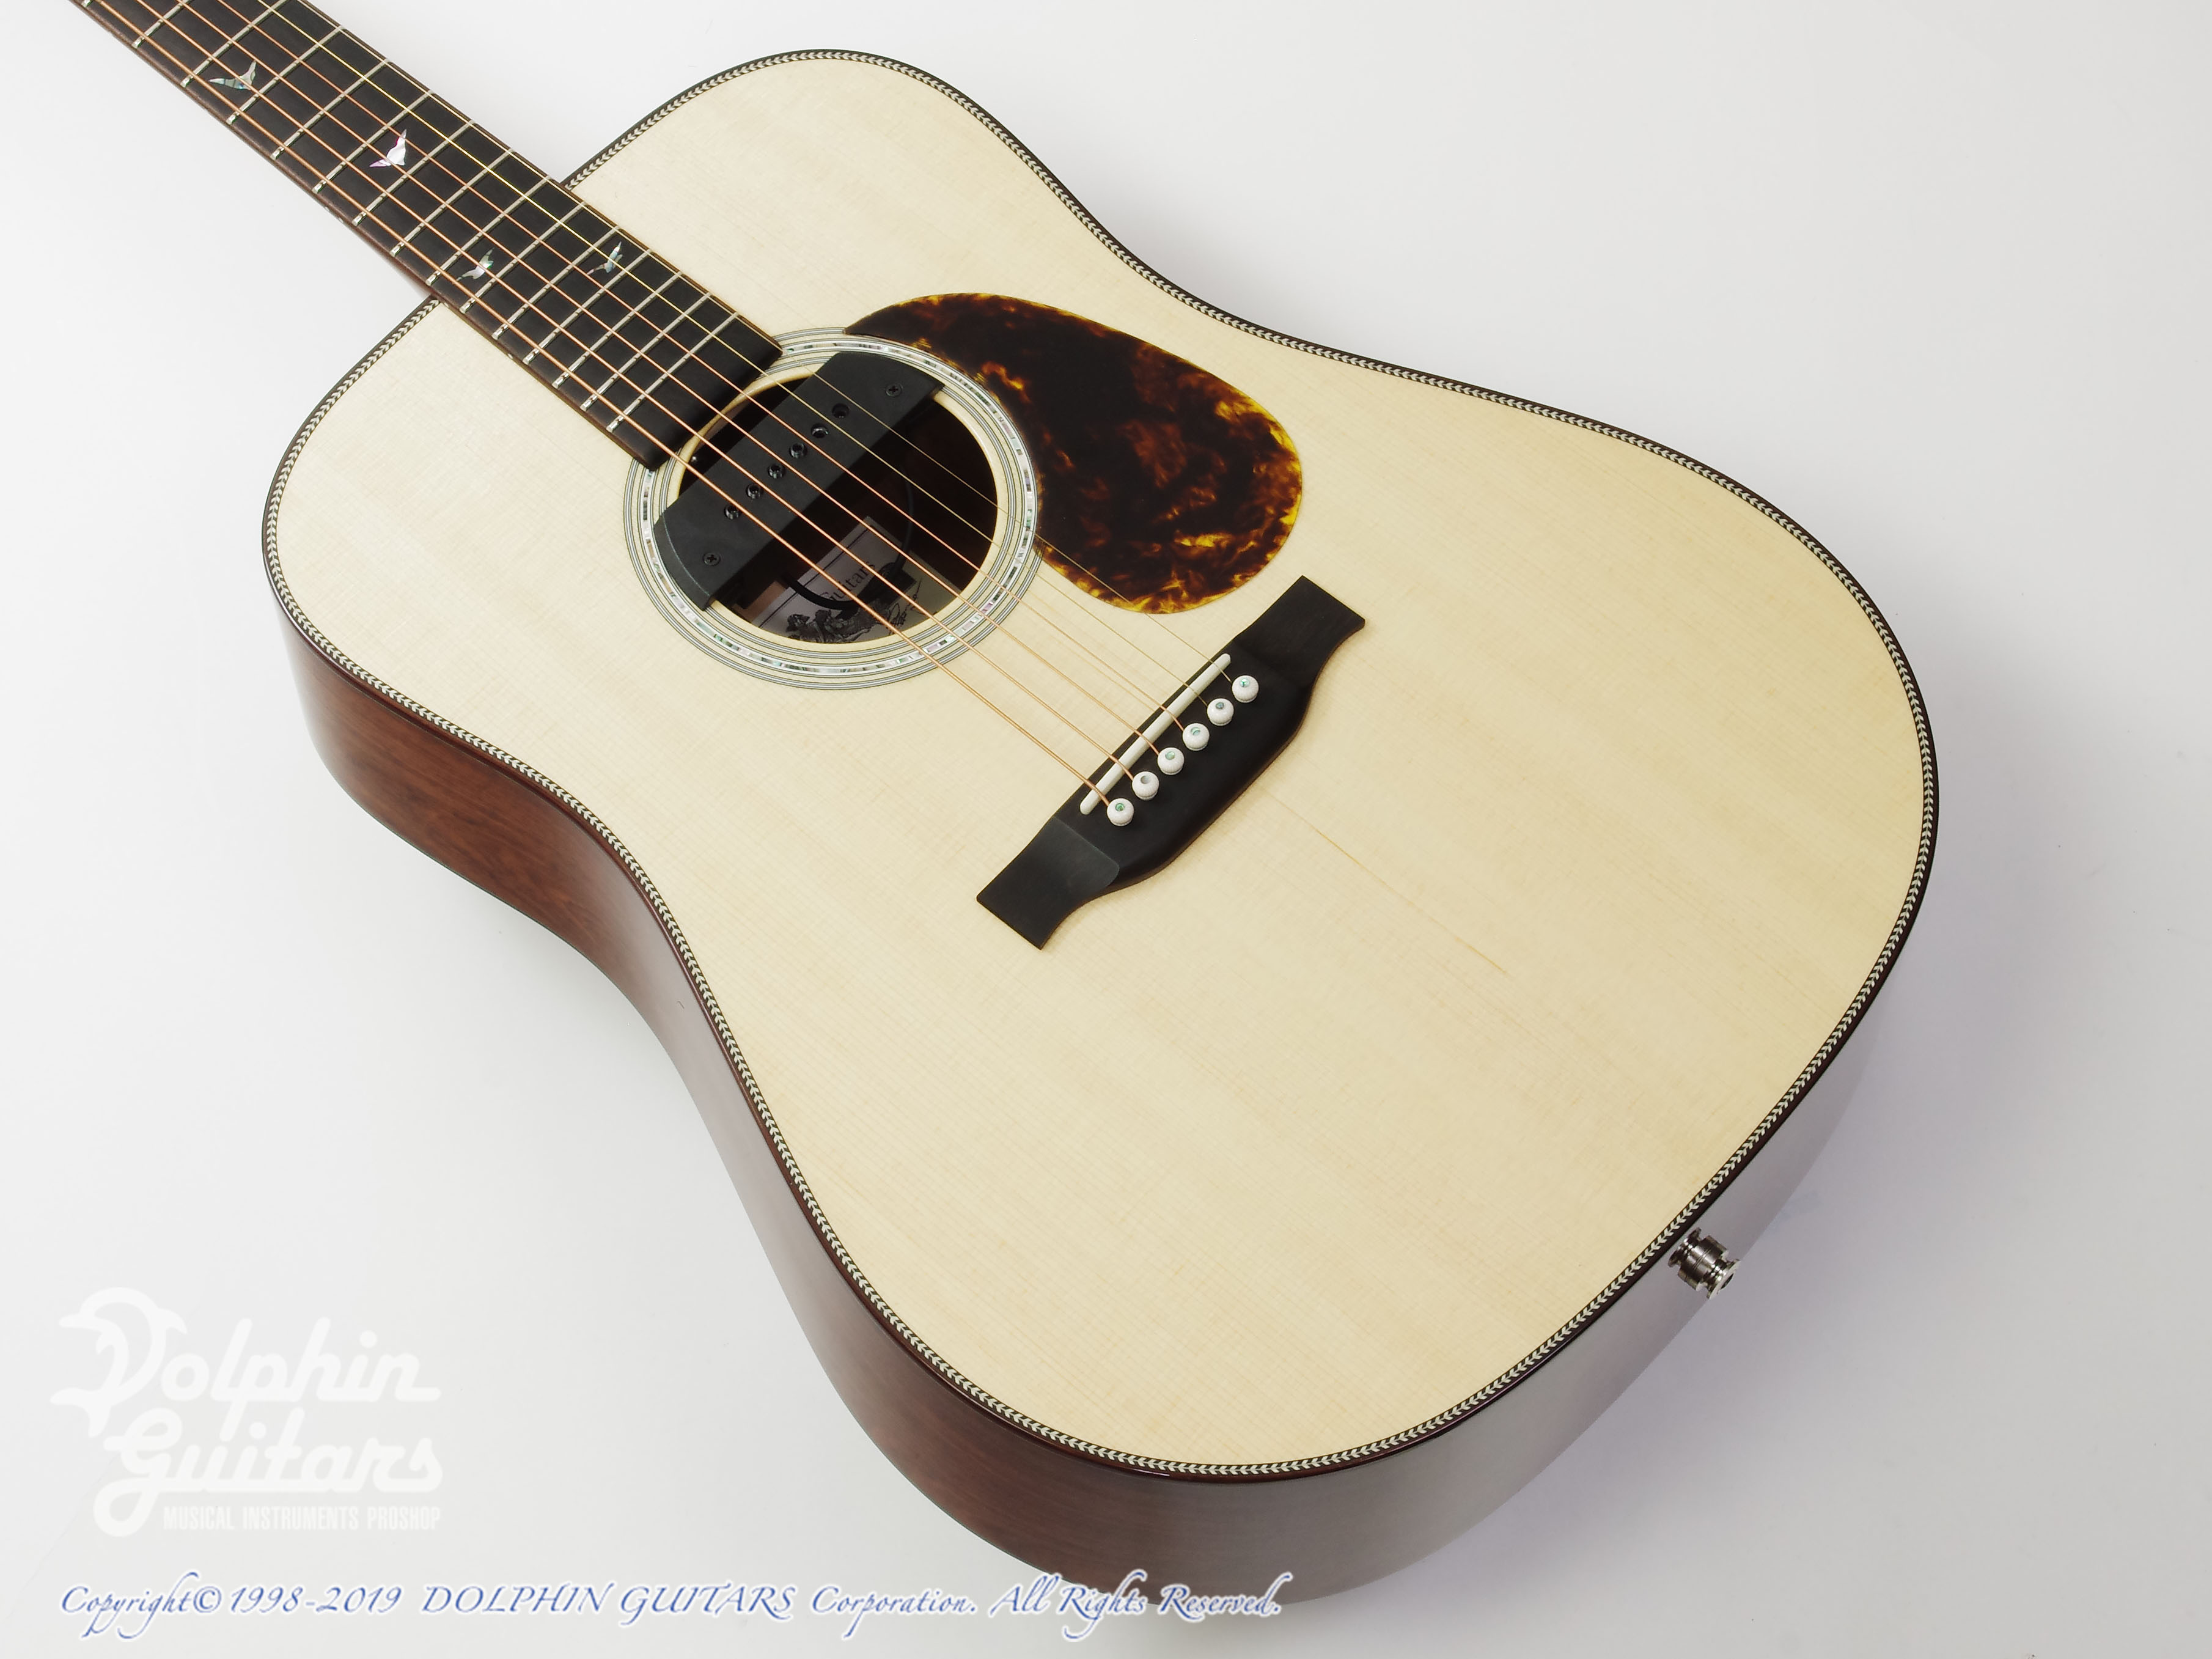 Greven Guitars Japan: Oshio-D HR (Honduras Rosewood) w/RAPTOR SYSTEM by TRIAL  (1)